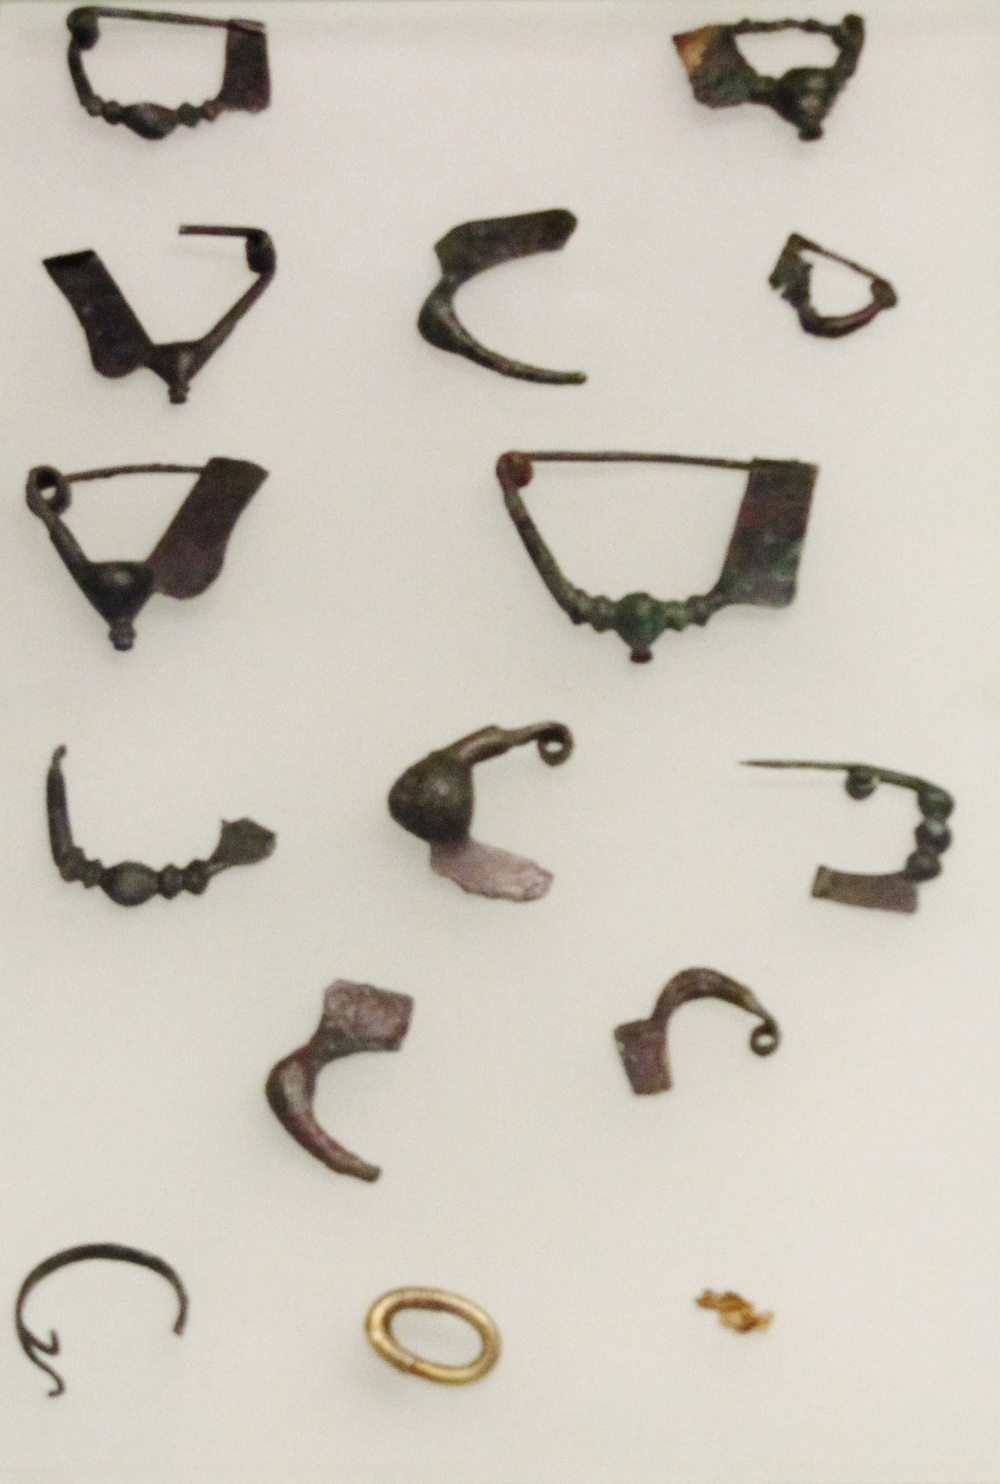 One of my photos from a recent trip to Greece, a collection of ancient Fibulae brooch style   fasteners